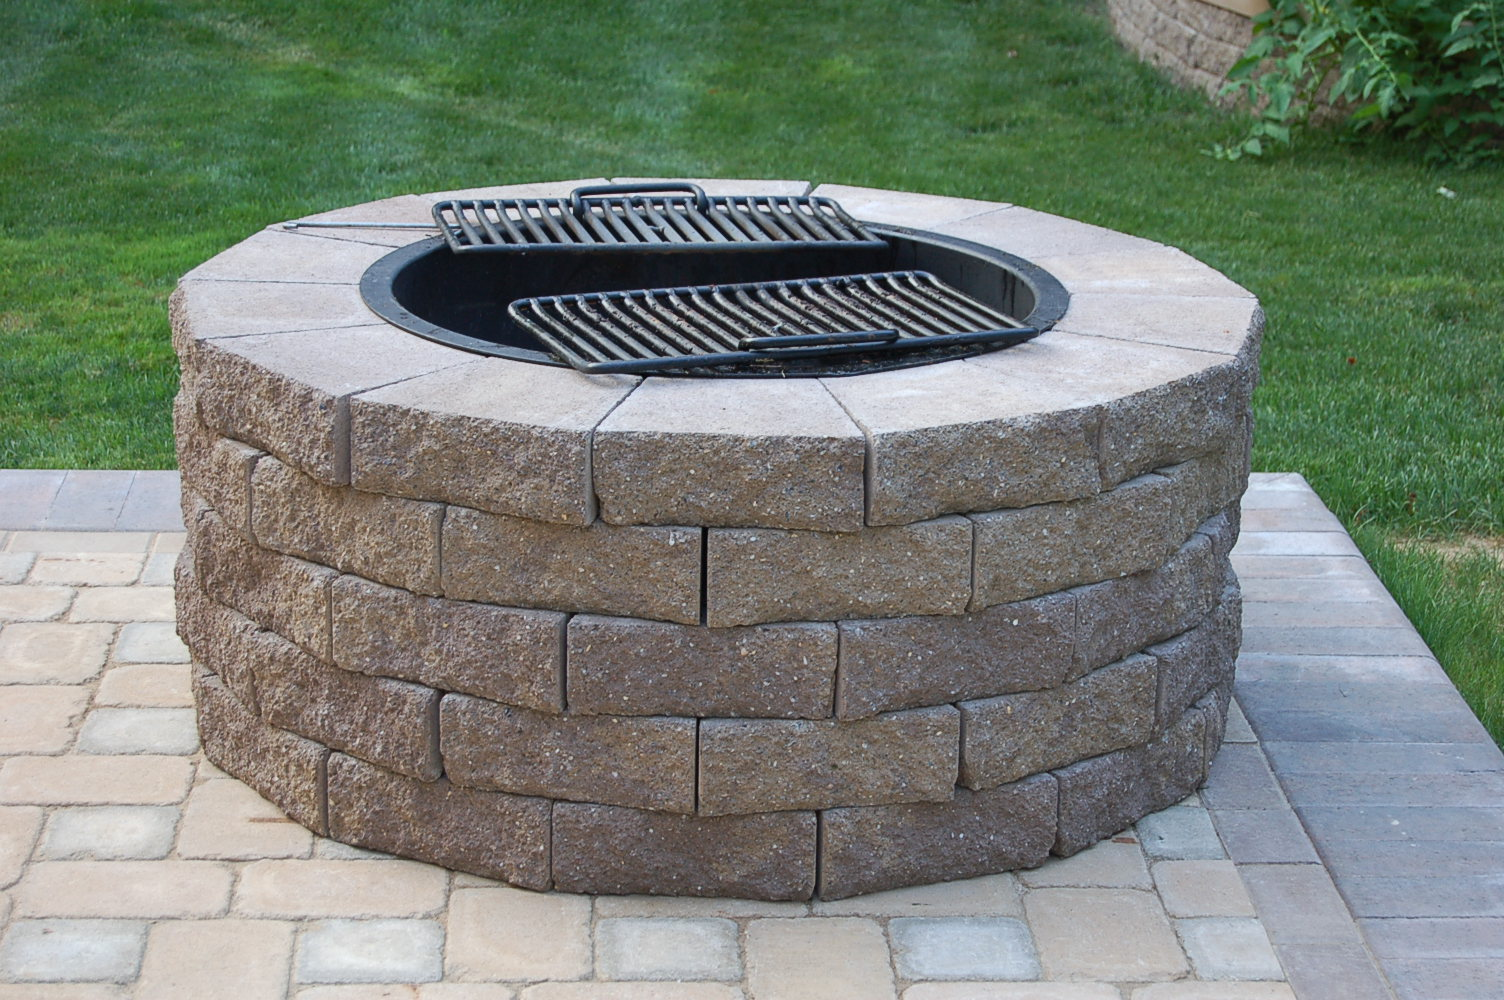 Fire pit cooking grate fireplace design ideas for Easy diy fire pit with grill